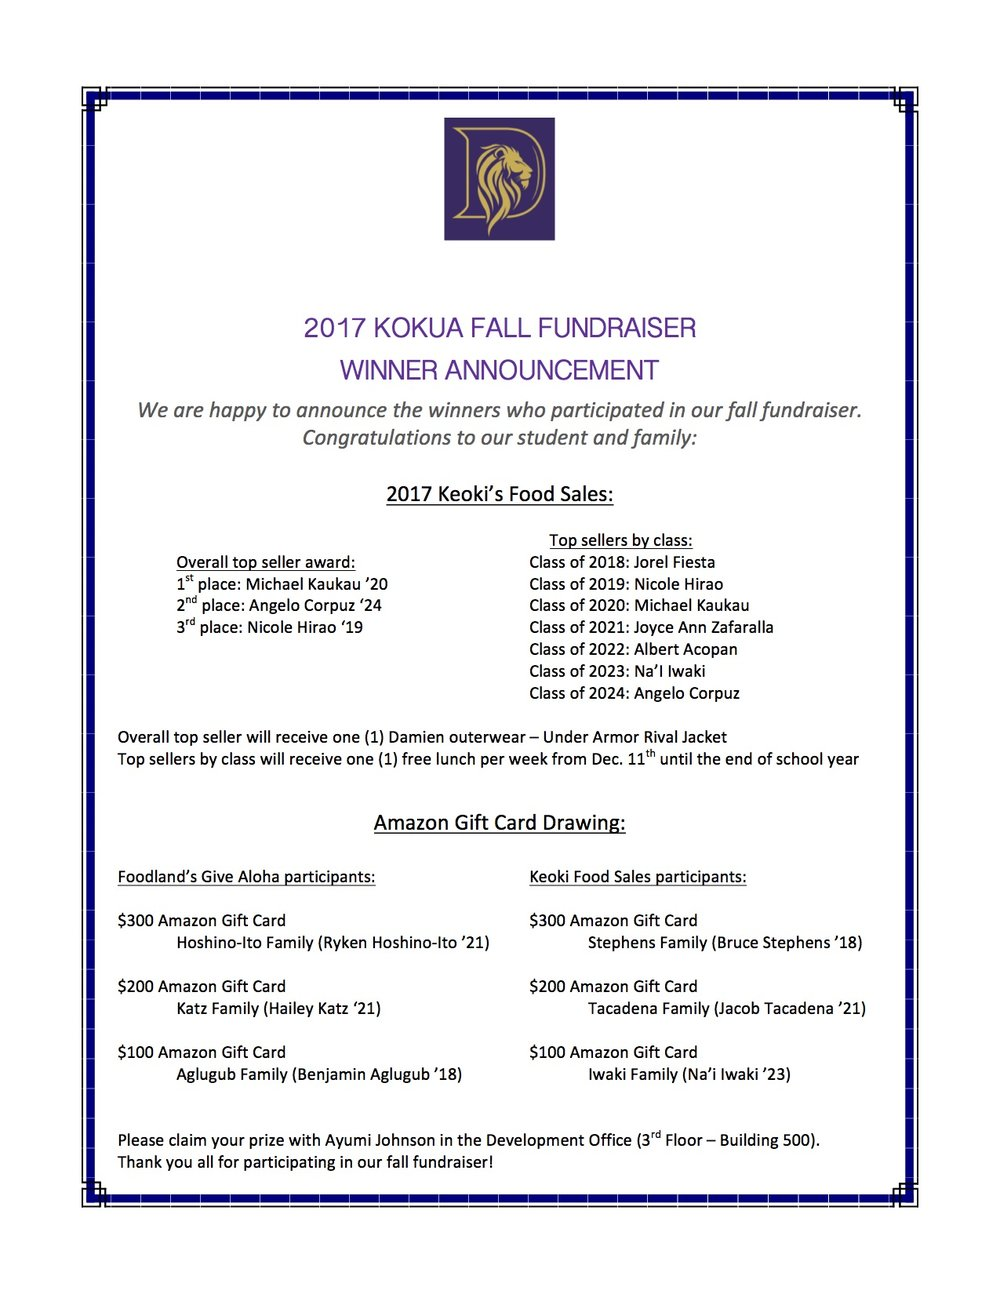 2017 Fall Fundraiser Winner announcement (1).jpg